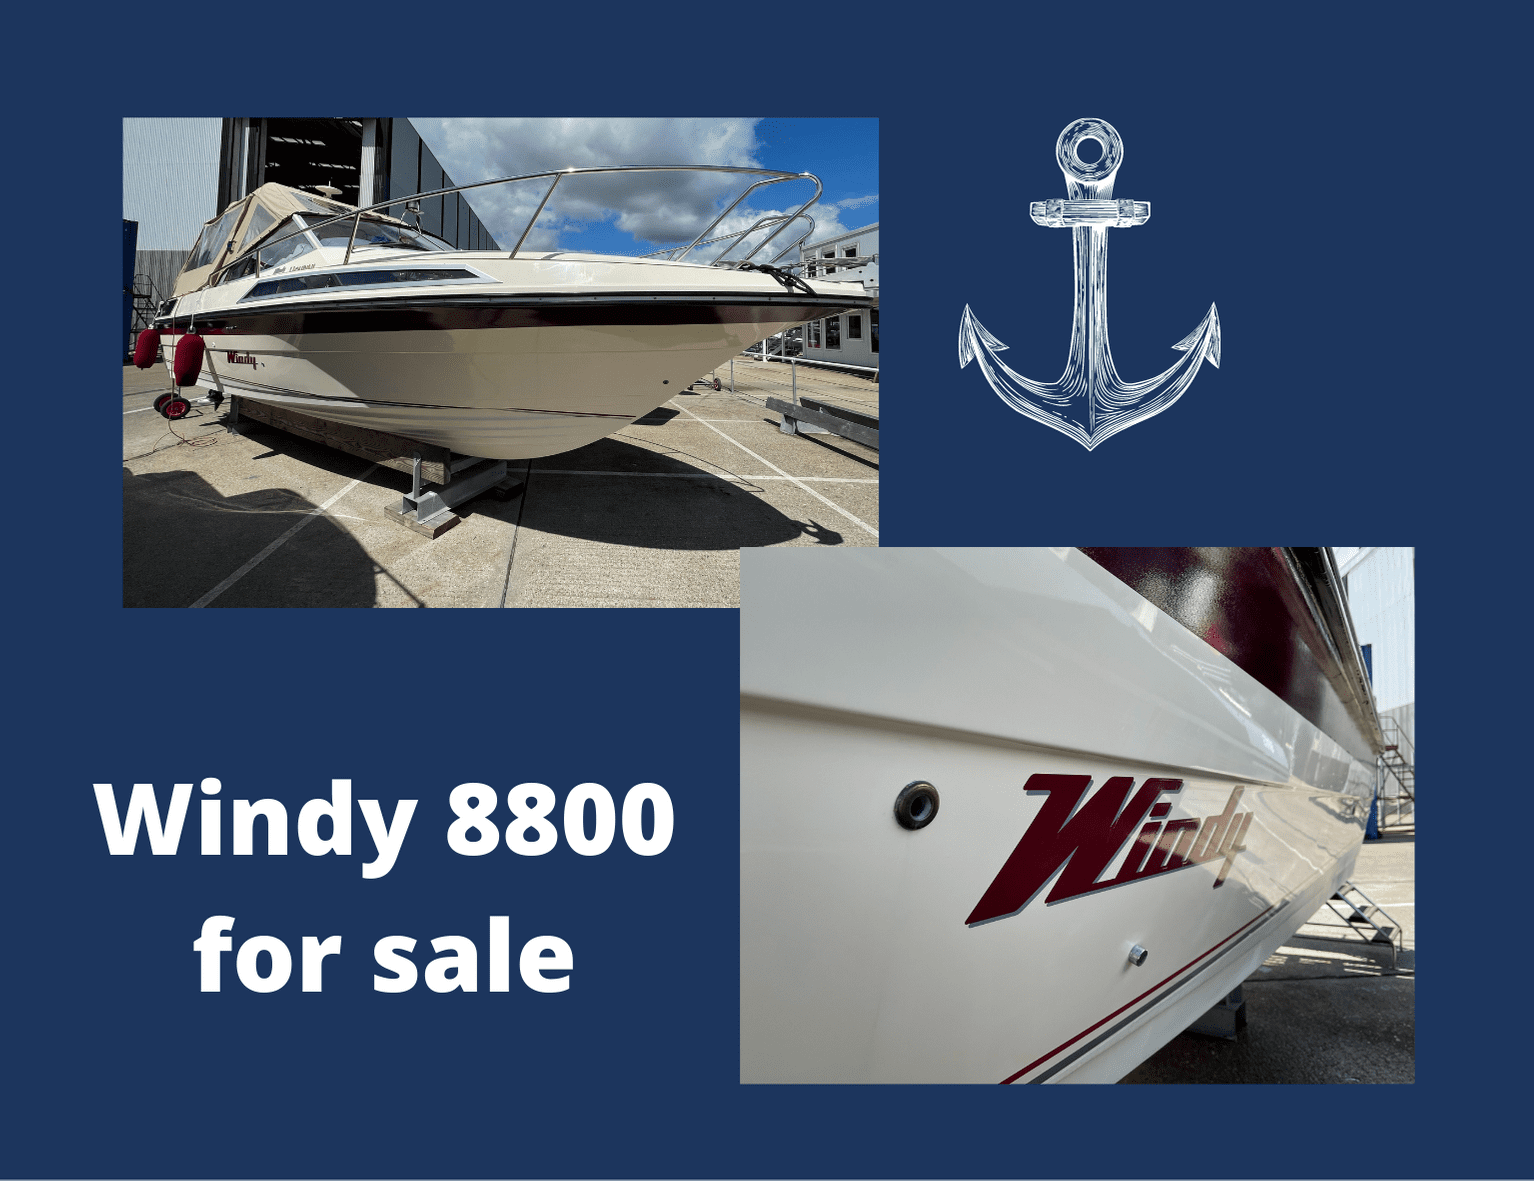 Windy 8800 for sale